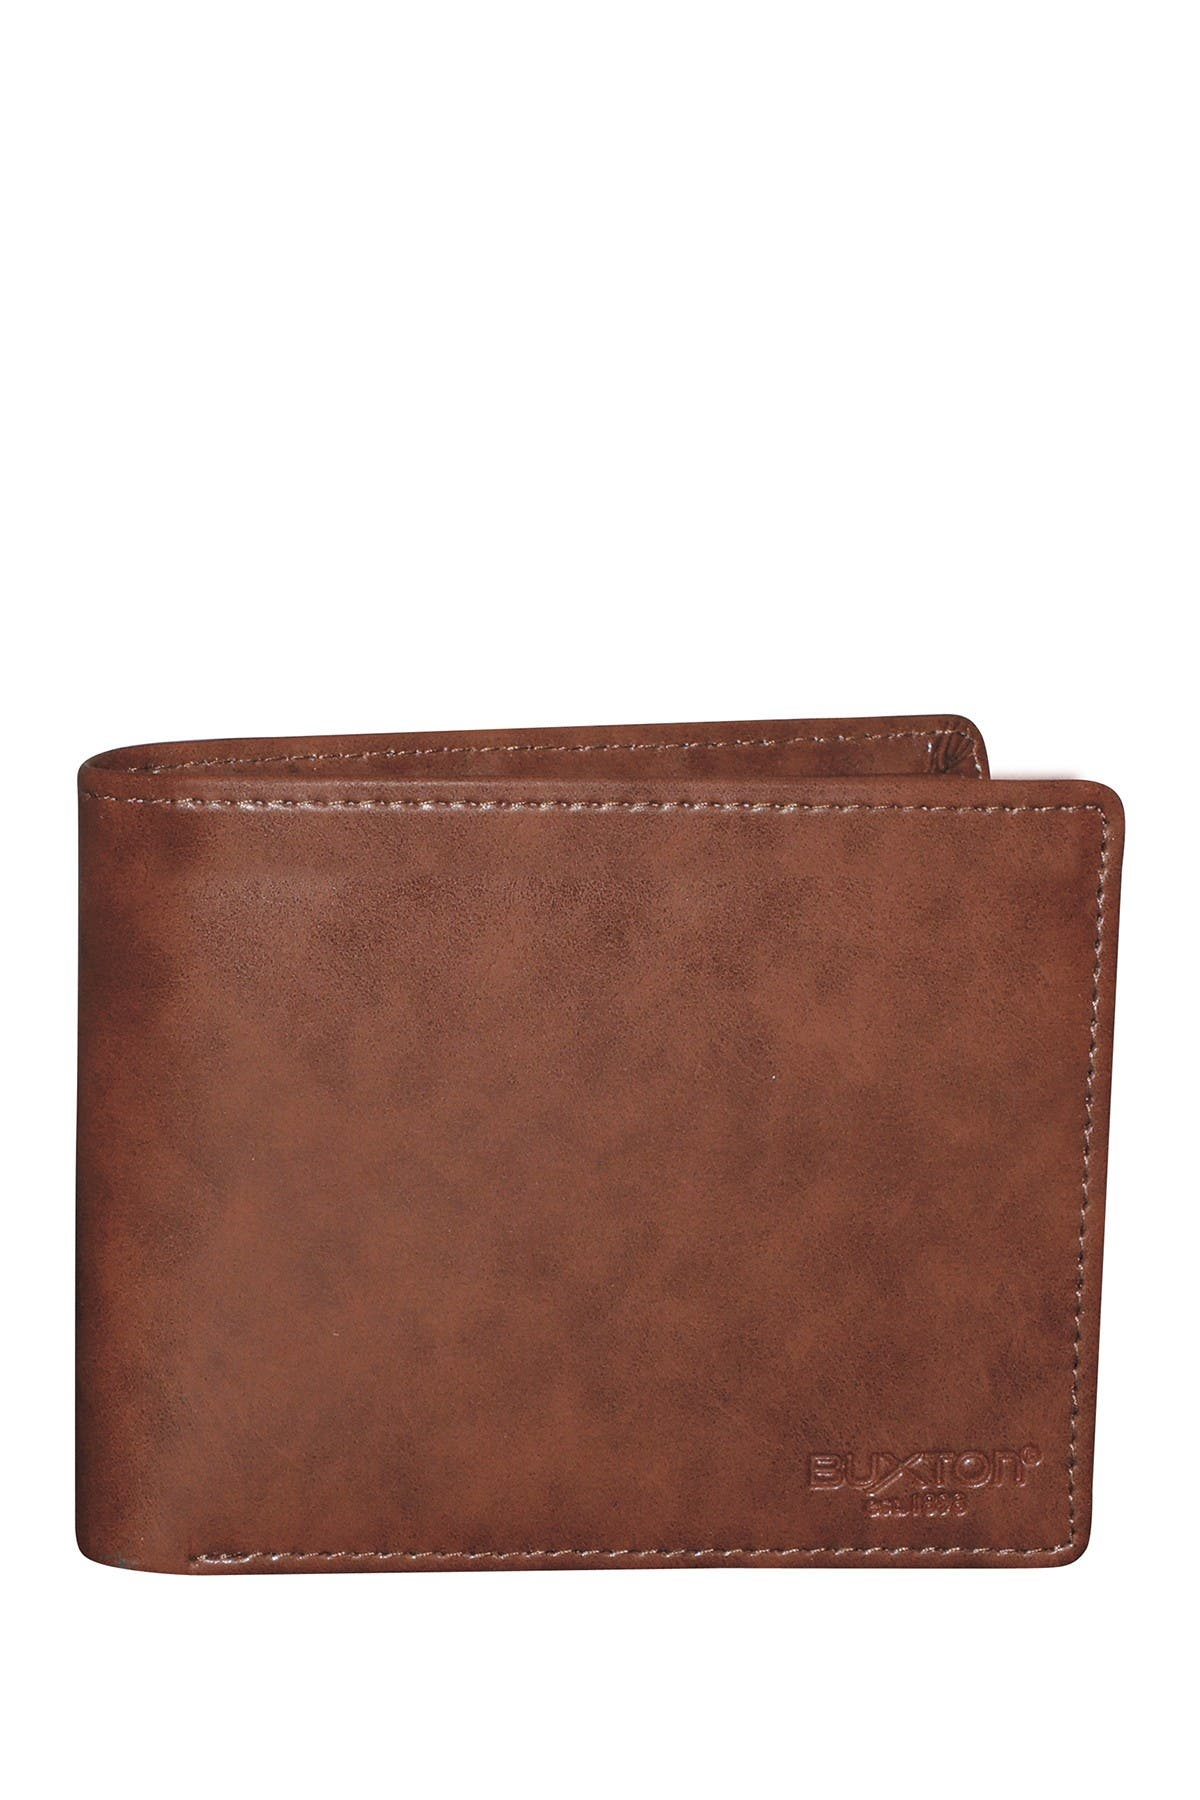 Image of Buxton RFID Bifold Card Wallet